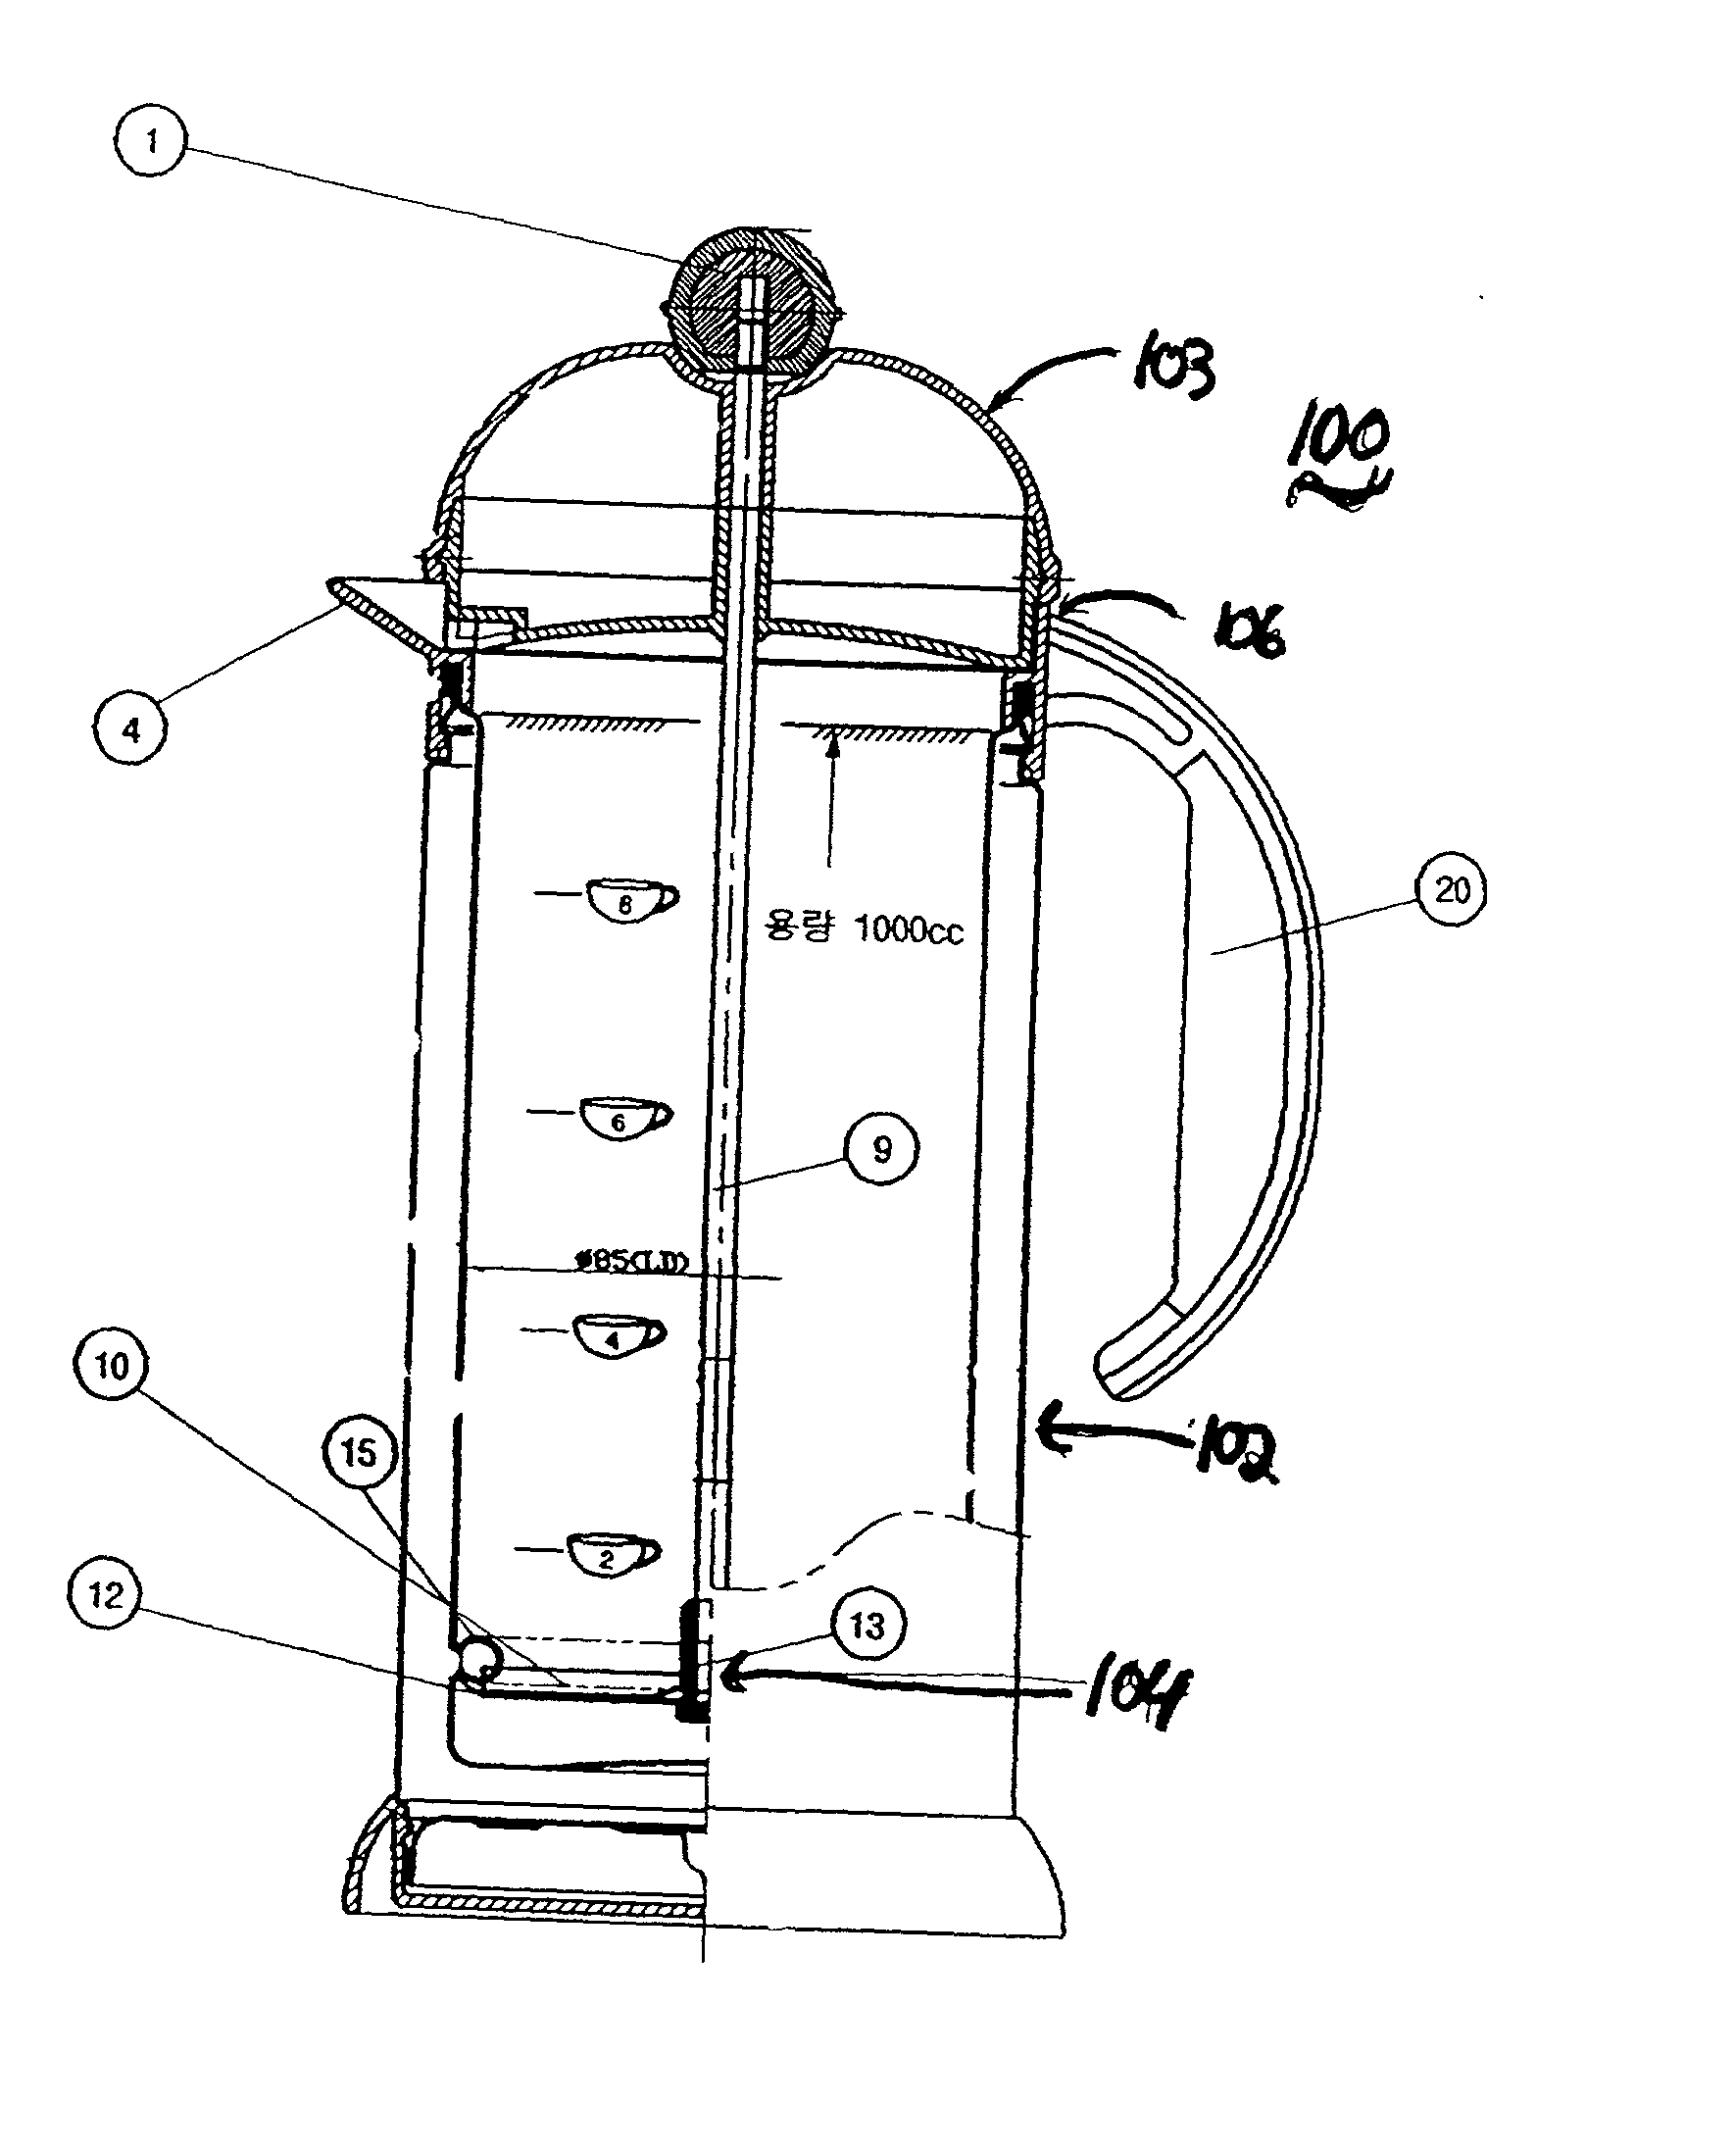 French Press Coffee Maker Assembly : Patent US20030047081 - French press coffee maker with assembly to selectively reduce contact of ...